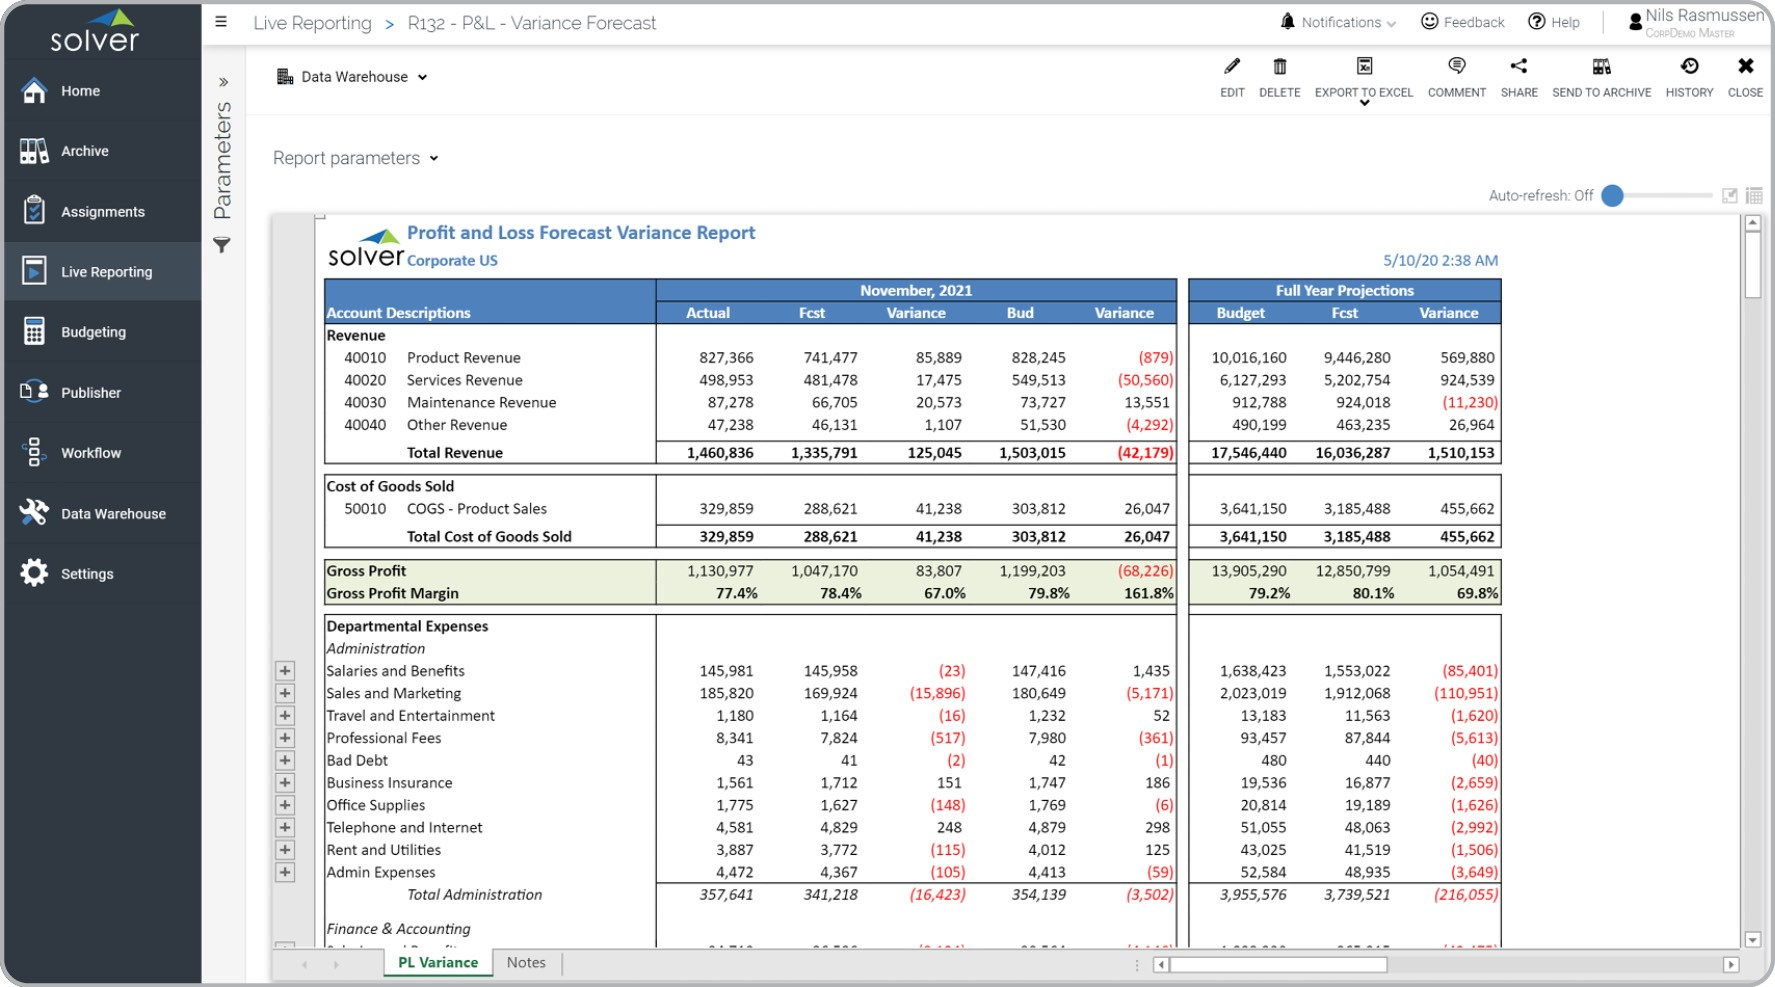 profit and loss forecast variance report